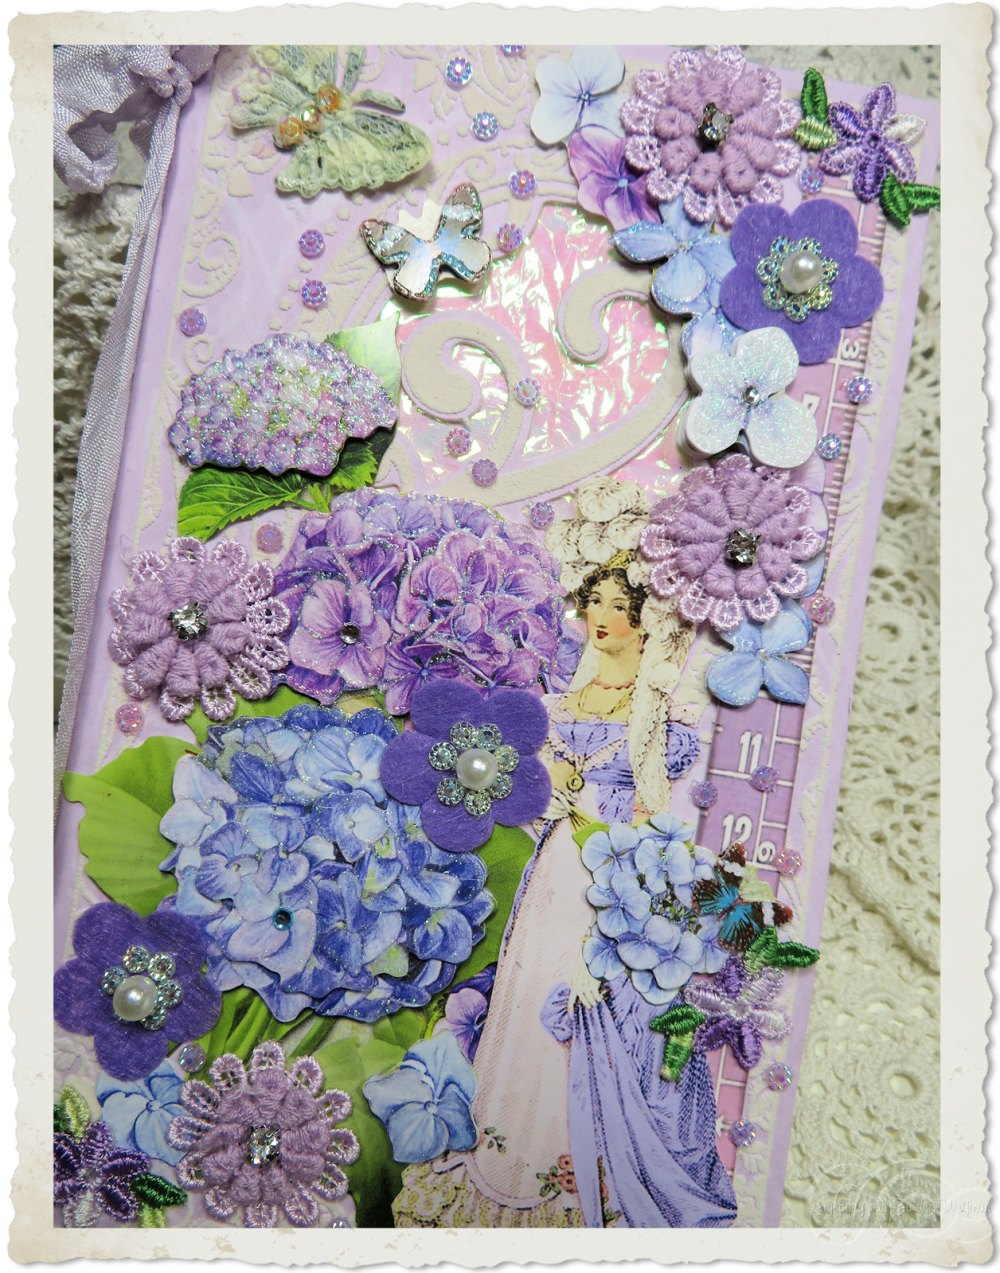 Handmade greeting card with Regency lady and Hydrangea flowers